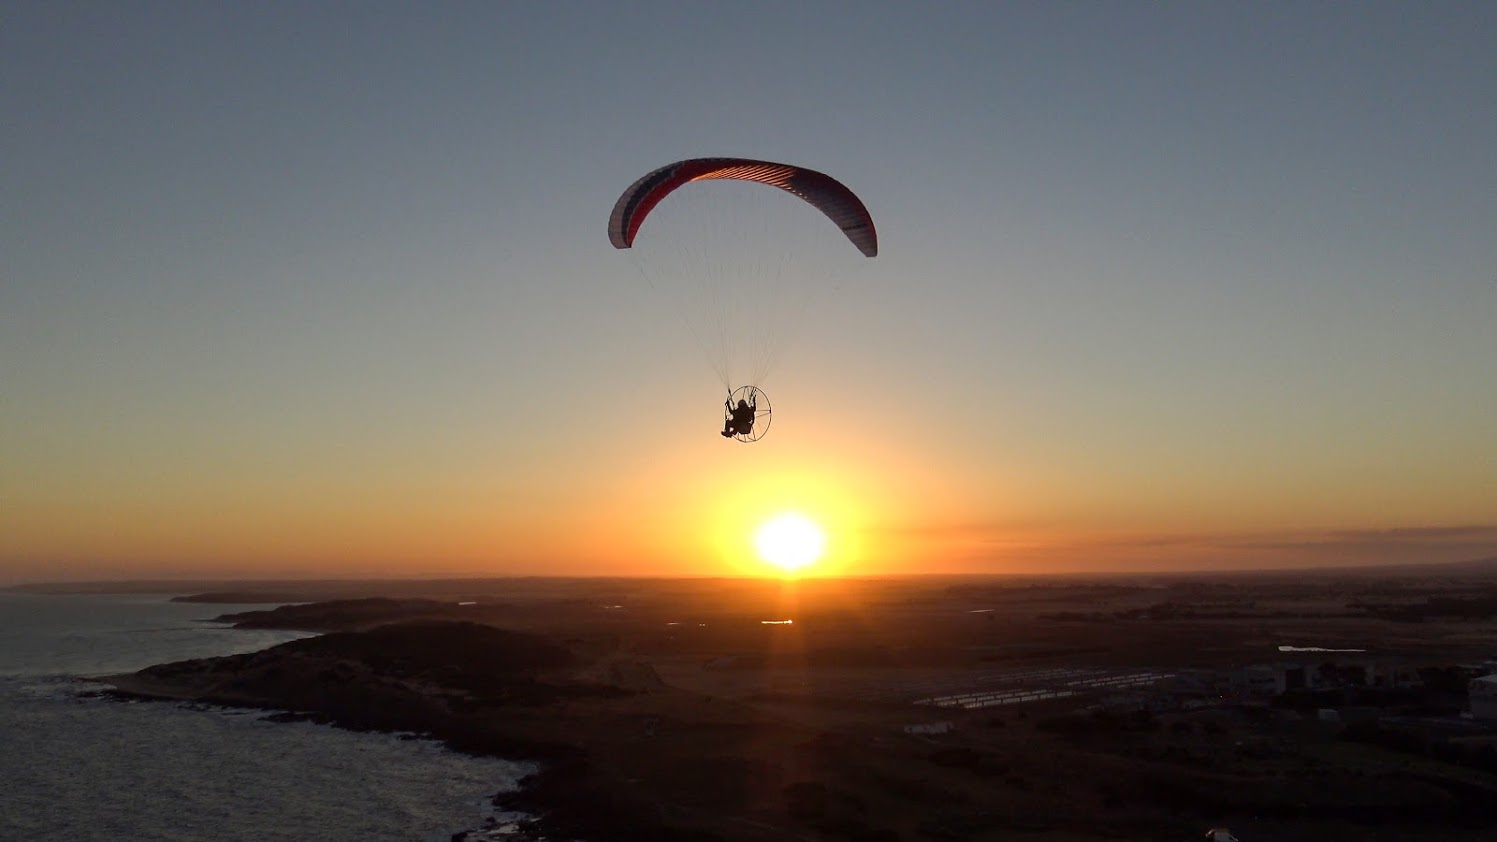 Air Conception Paramotor